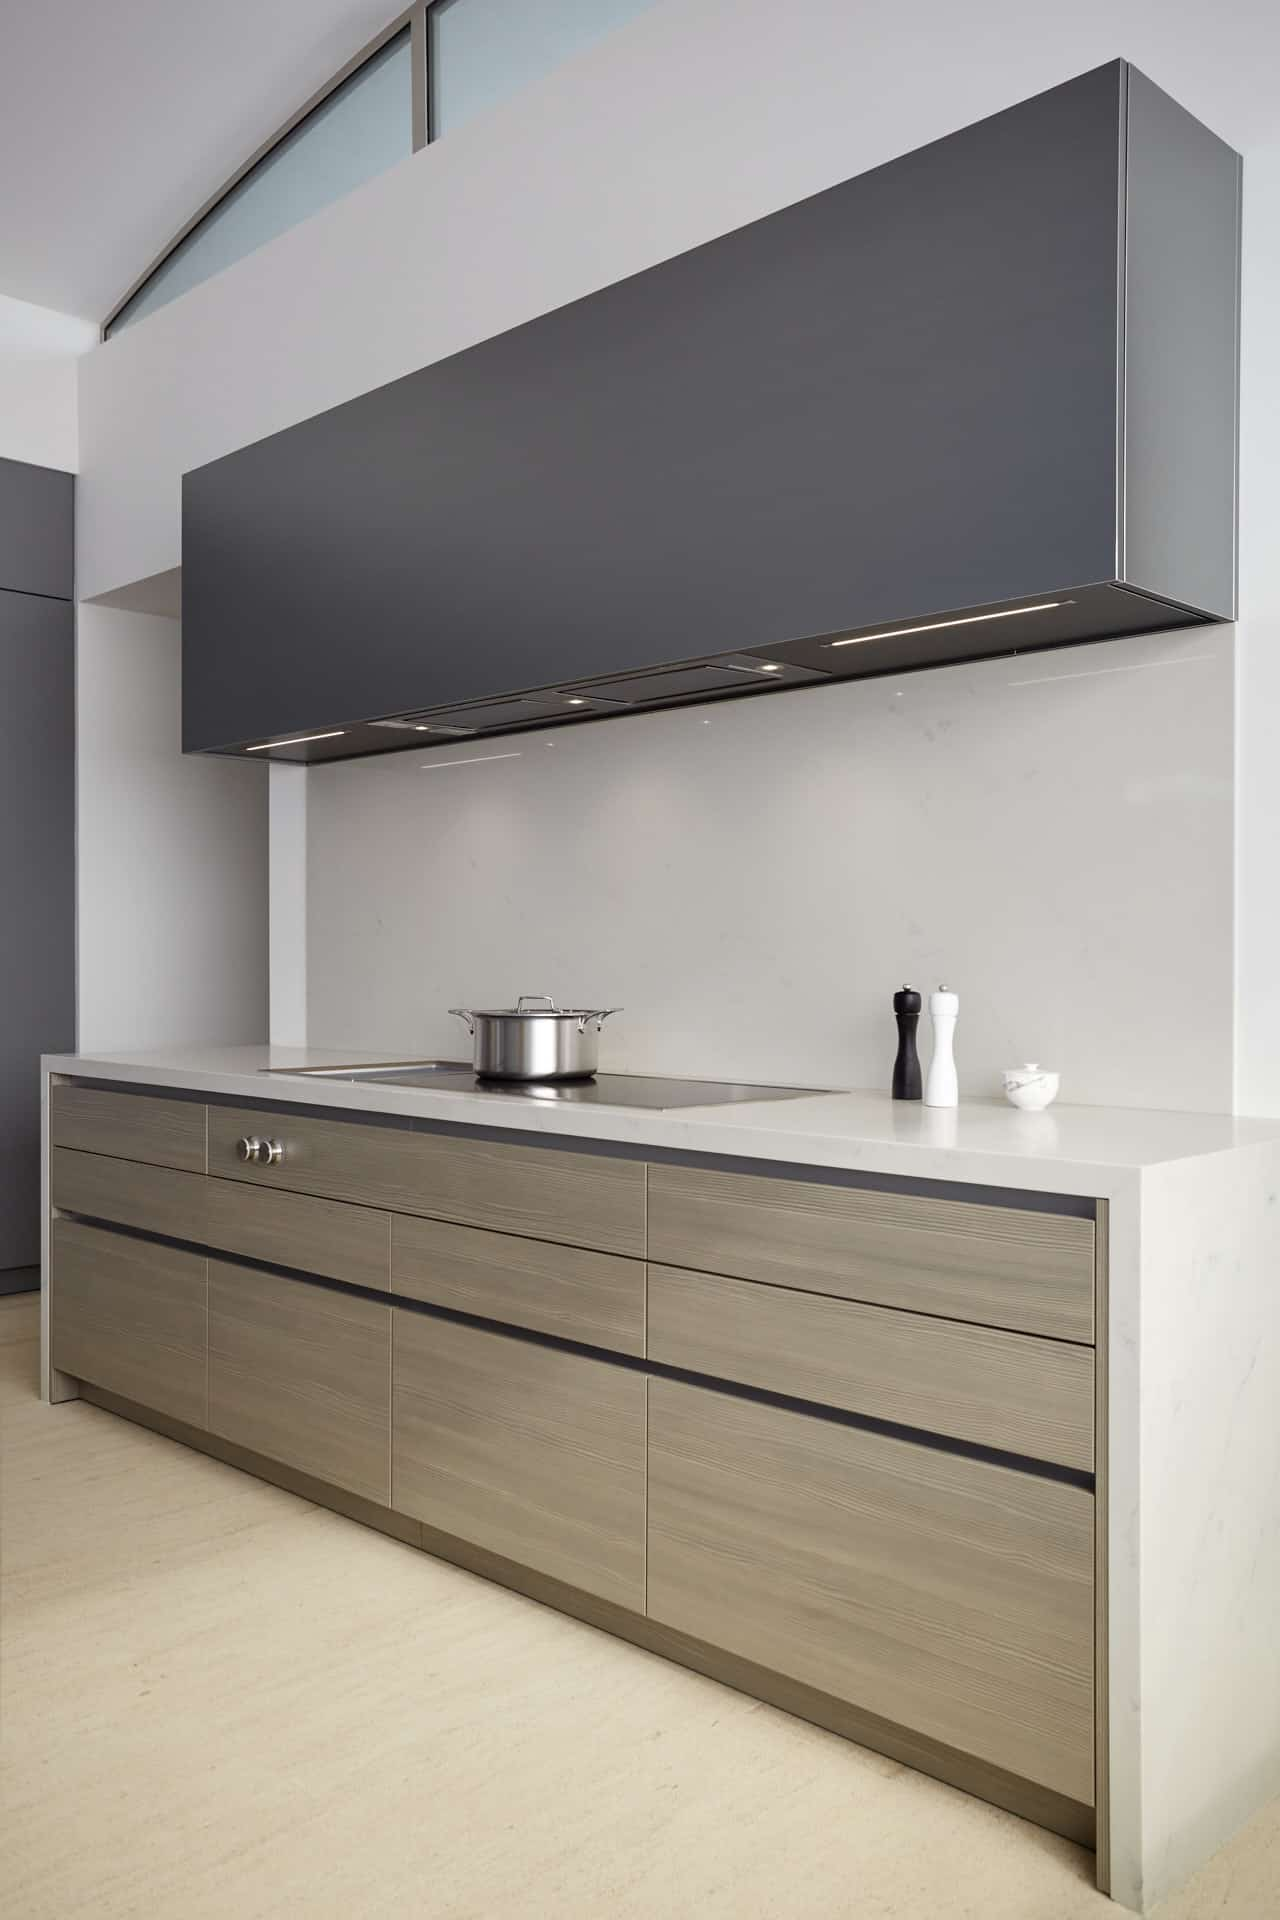 Main kitchen's induction stove and beautifully paired cabinetry finishes in woodgrain laminate and dark aluminum